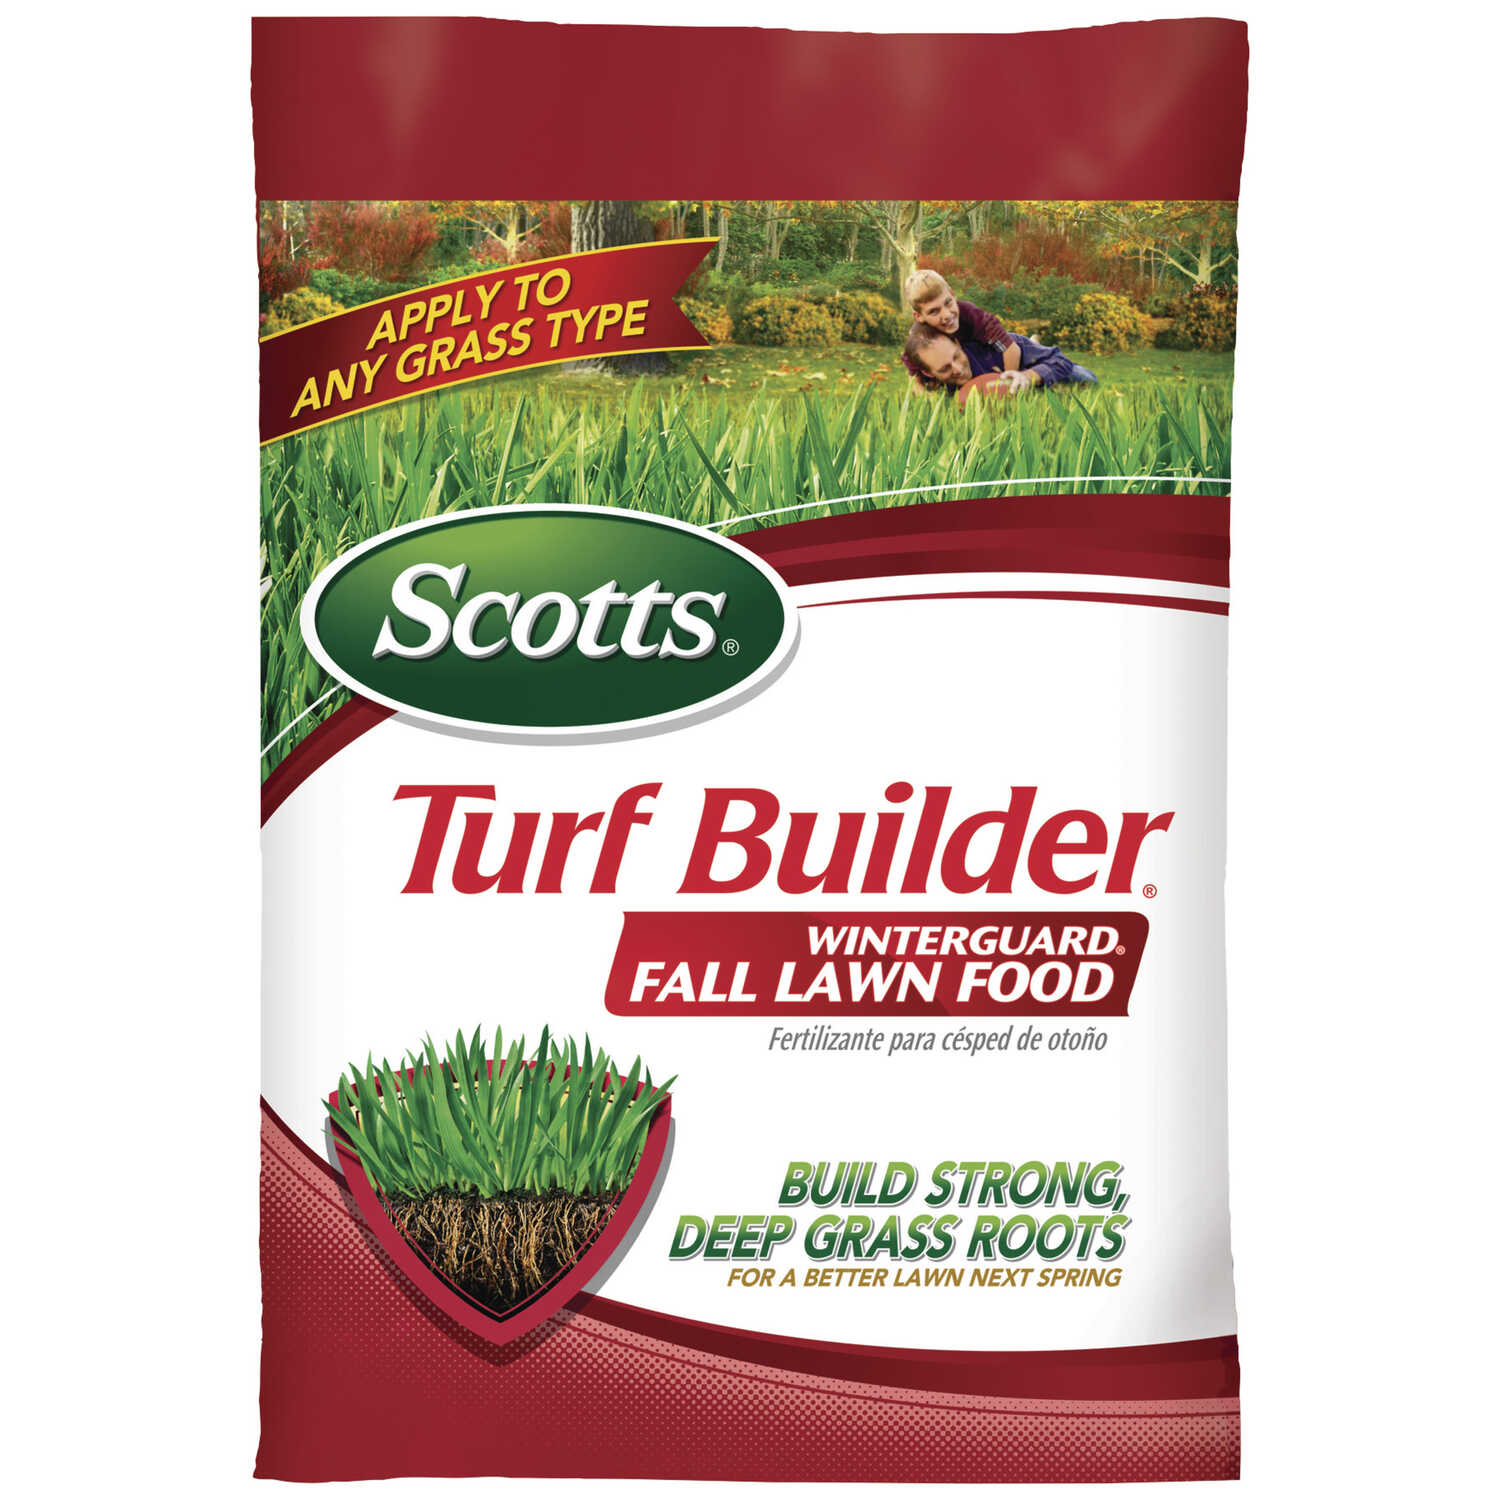 Scotts  Turf Builder Winterguard  32-0-10  Winterguard Lawn Food  For All Grass Types